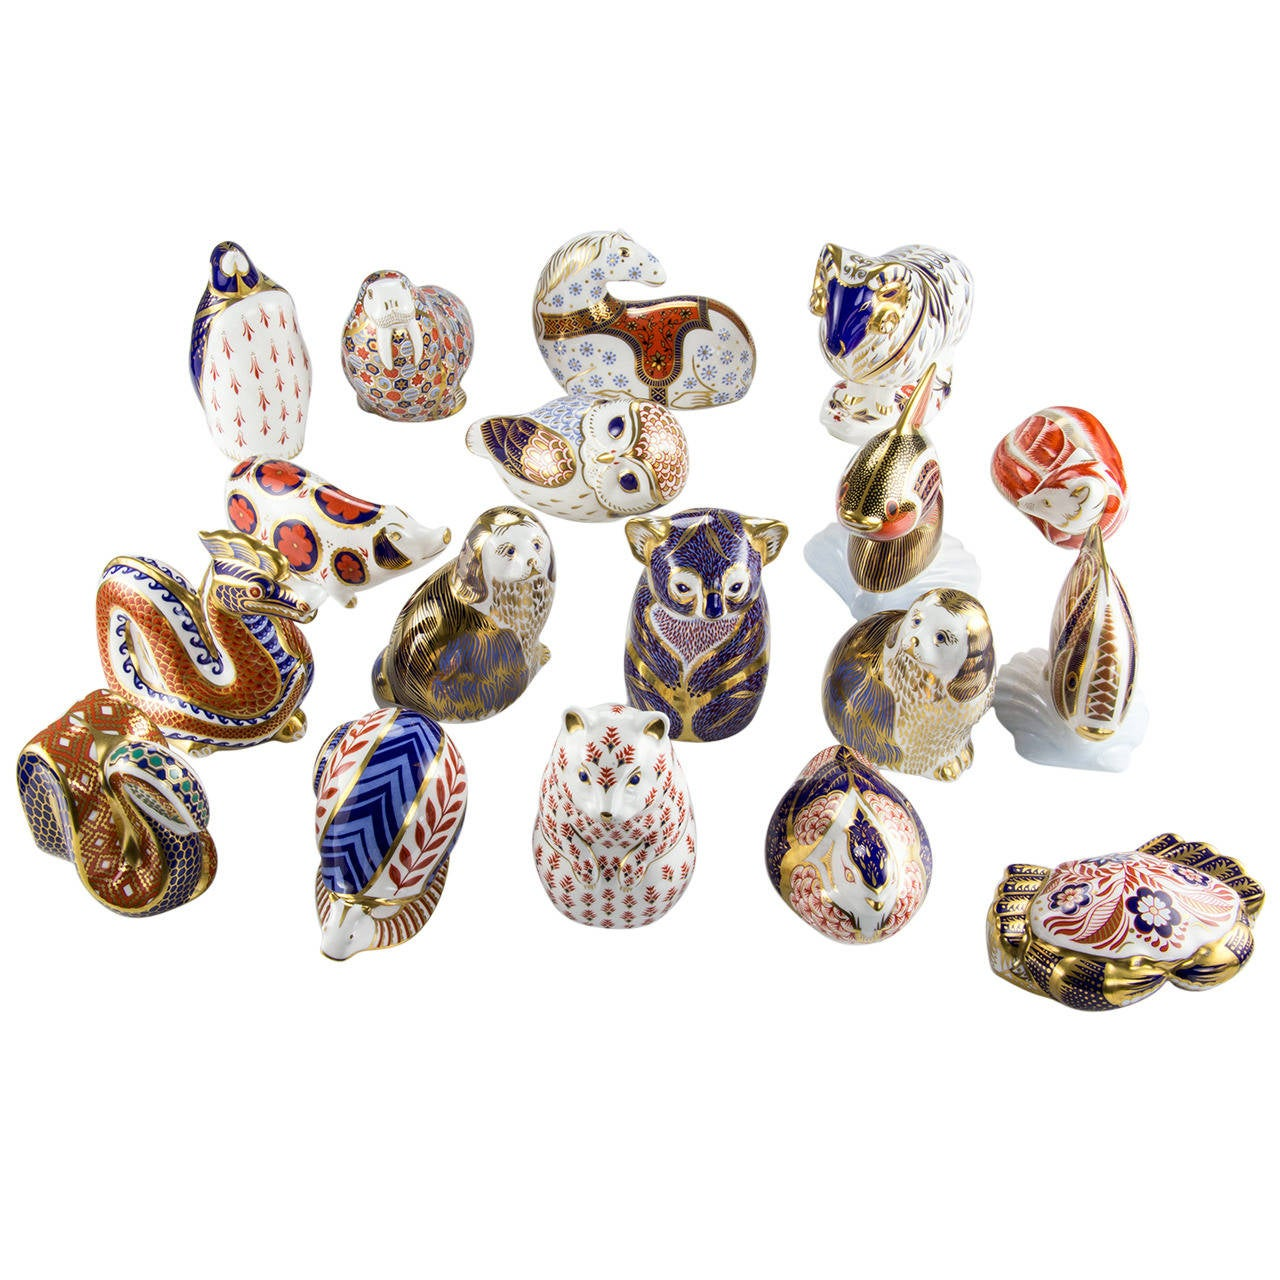 Royal crown derby collection of 18 porcelain figurines england at royal crown derby collection of 18 porcelain figurines england for sale reviewsmspy